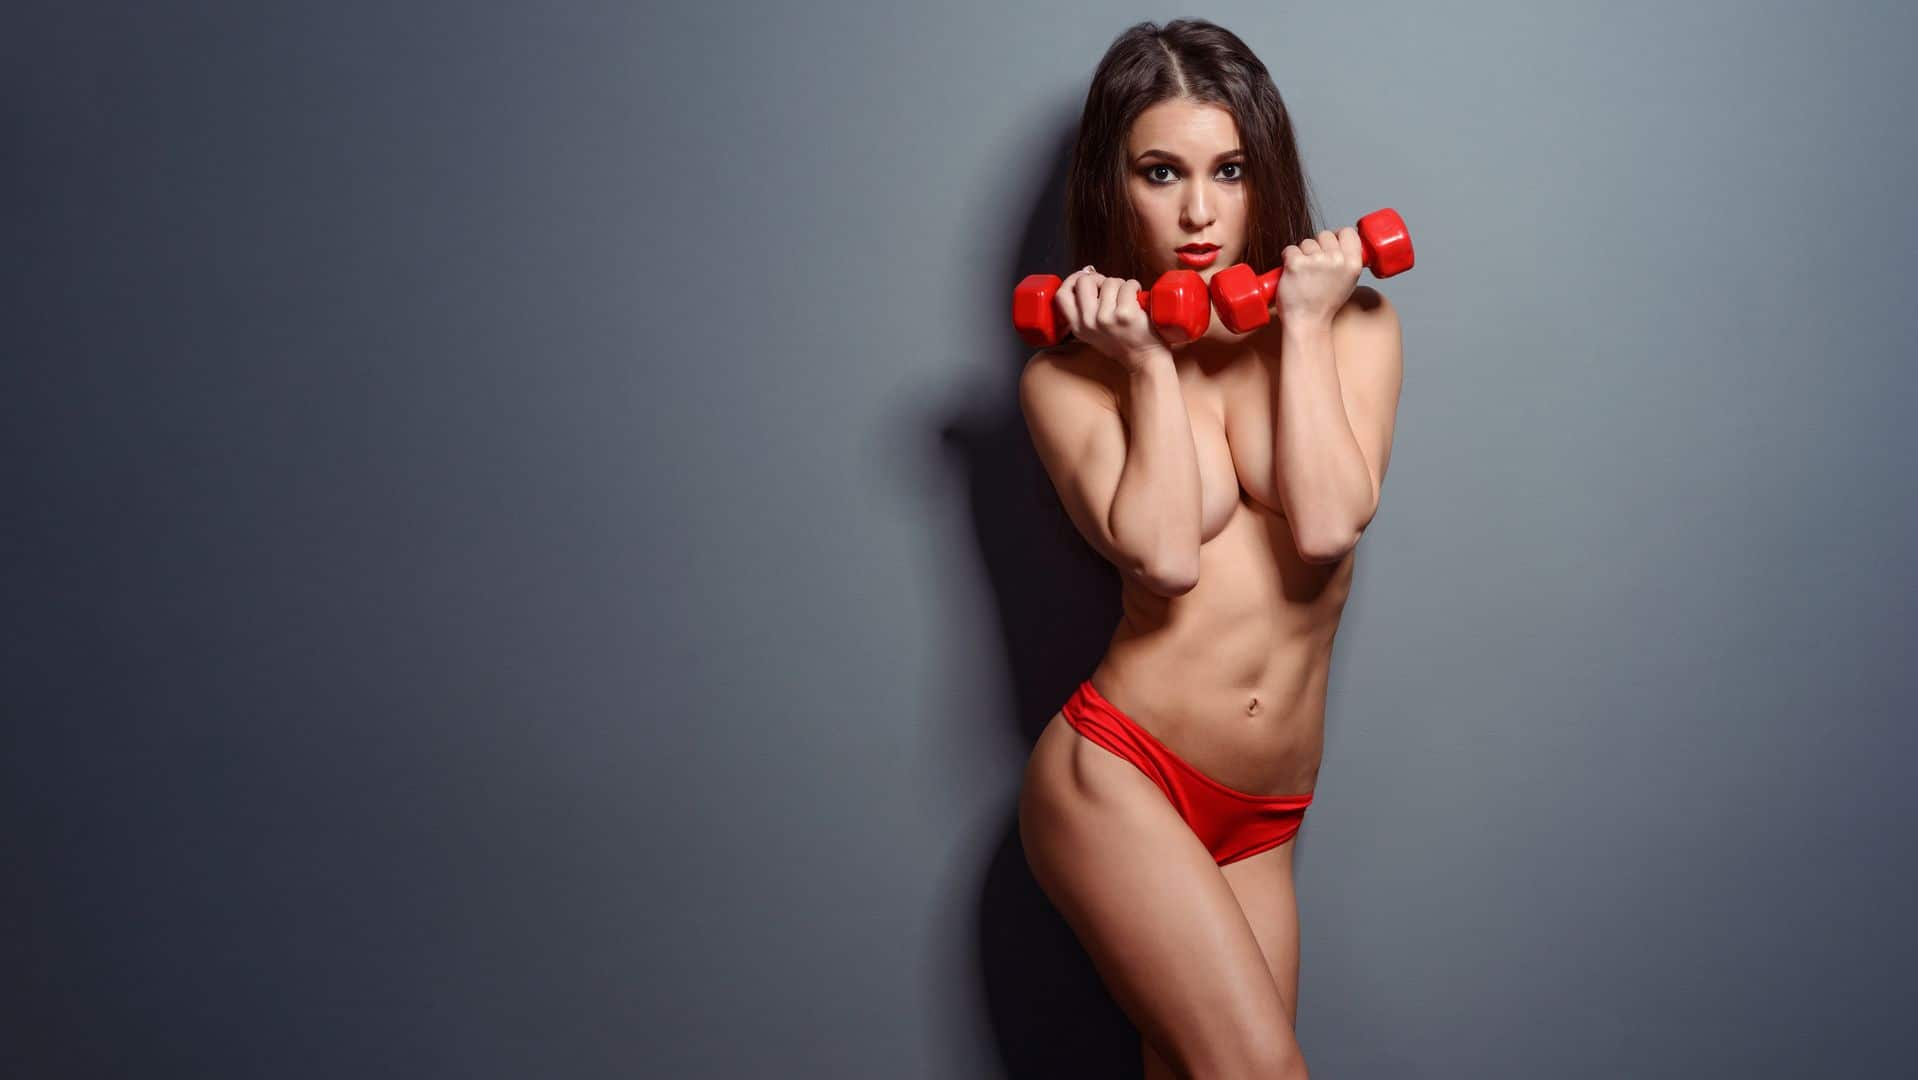 Top 20 Hot And Sexy Female Fitness Models With Links To -2389